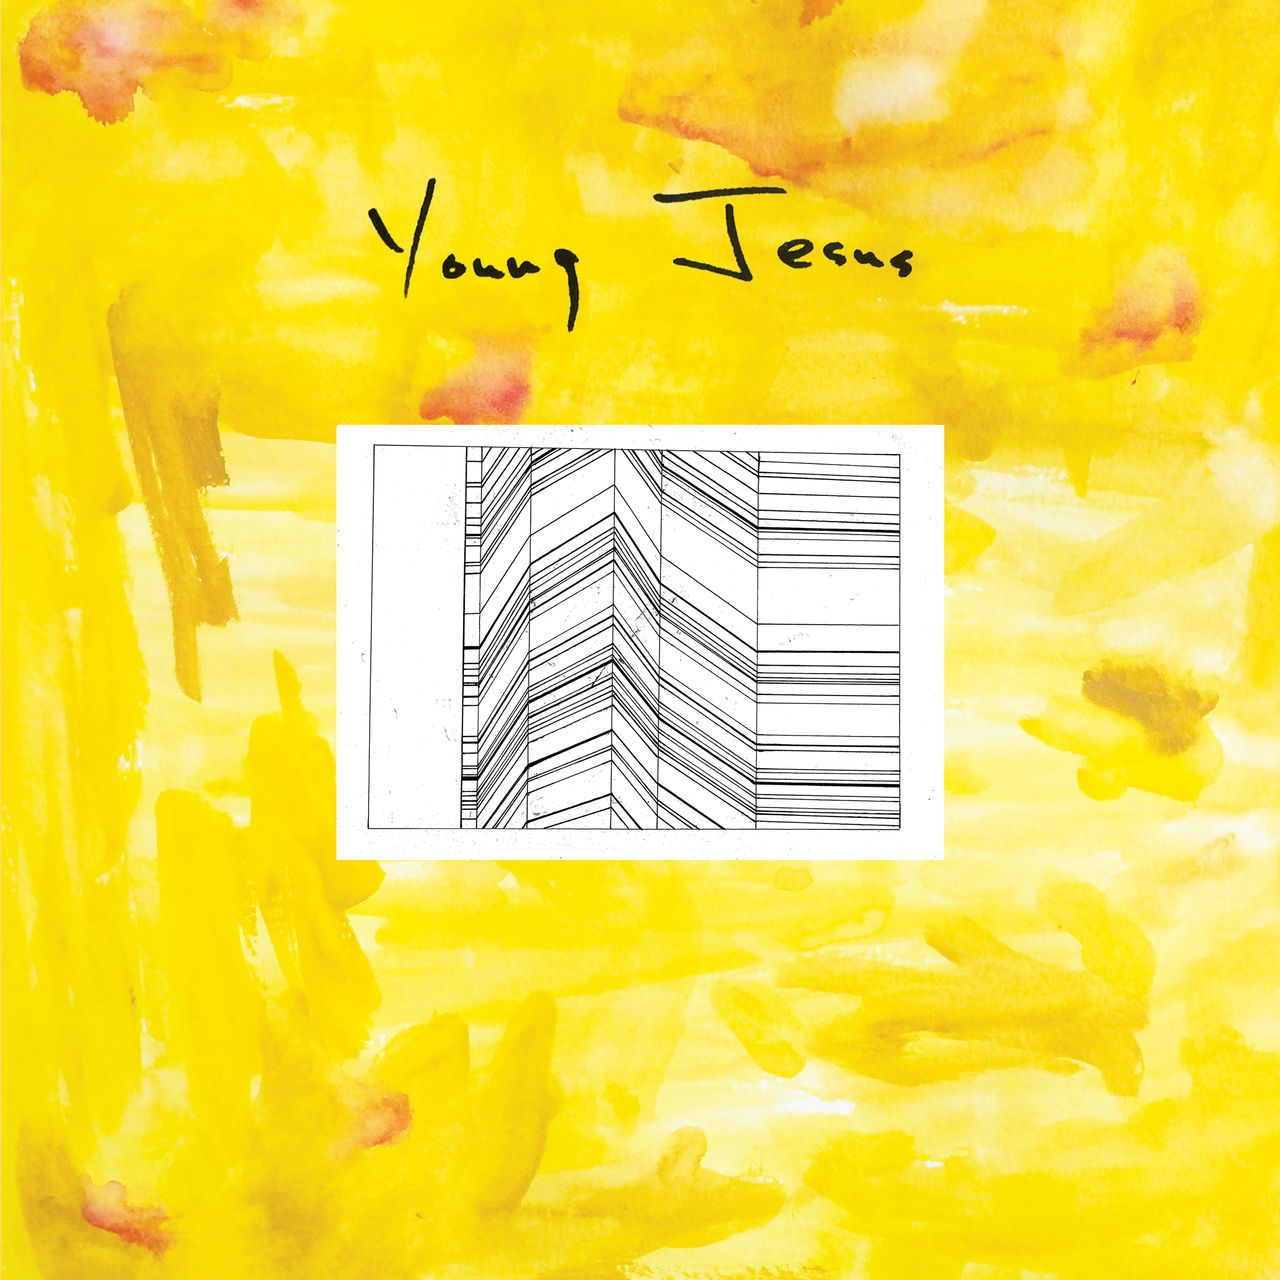 Young Jesus - The Whole Thing Is Just There (2018) [16 44 FLAC]